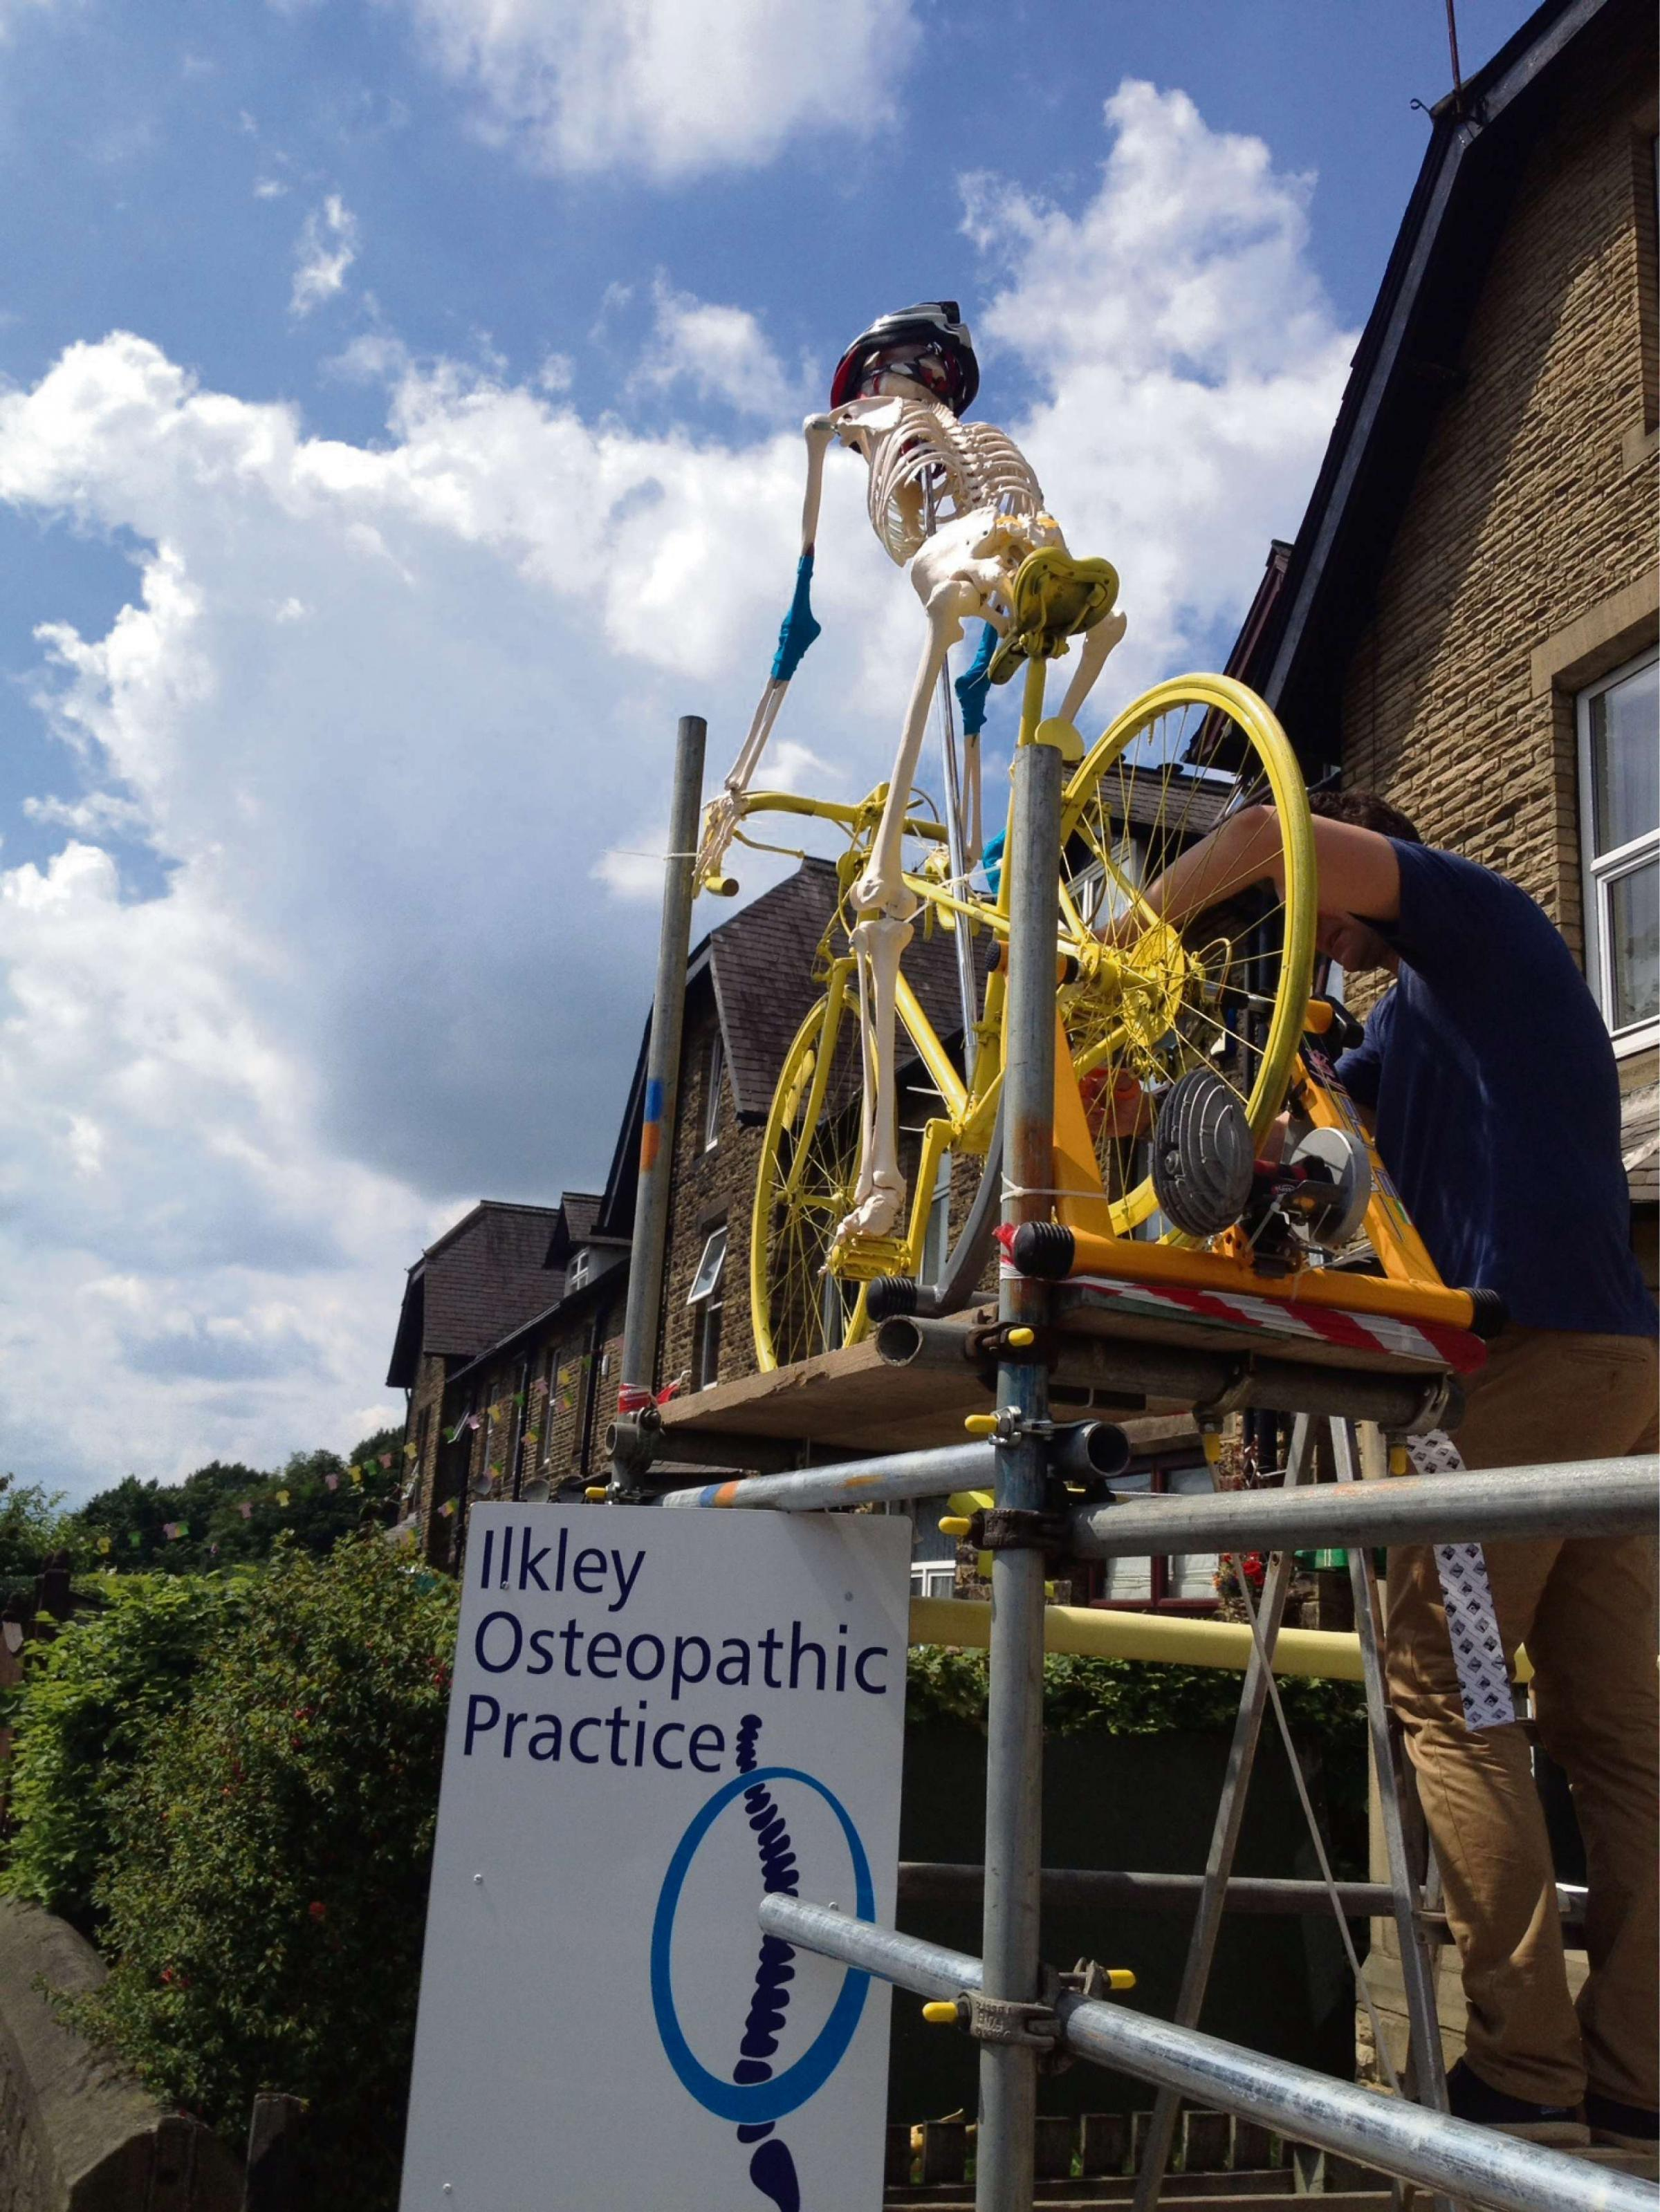 'Skeleton Steve' gets on his bike at Ilkley osteopaths for Tour de France